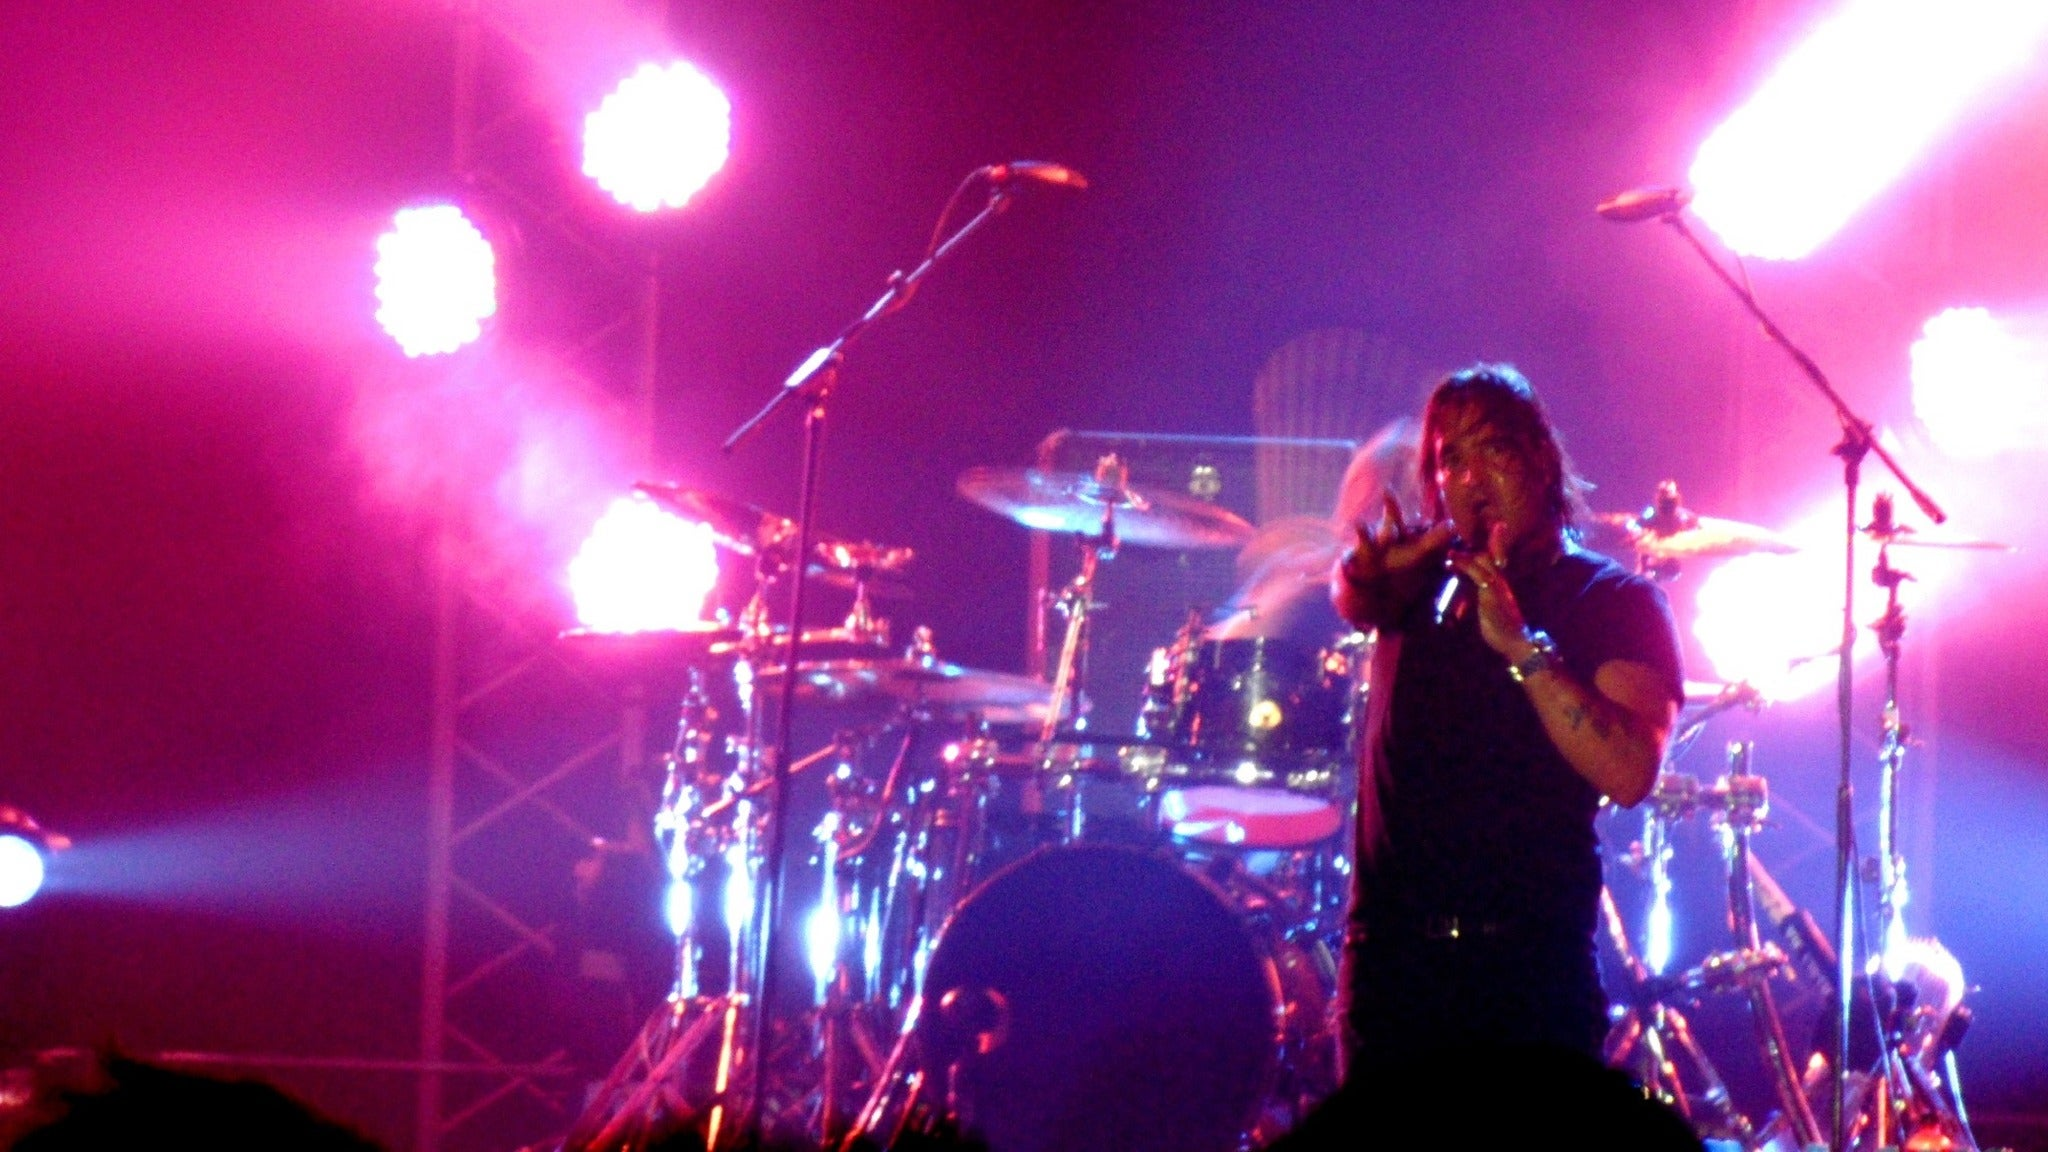 Scott Stapp: The Voice Of Creed at House of Blues Chicago - Chicago, IL 60654